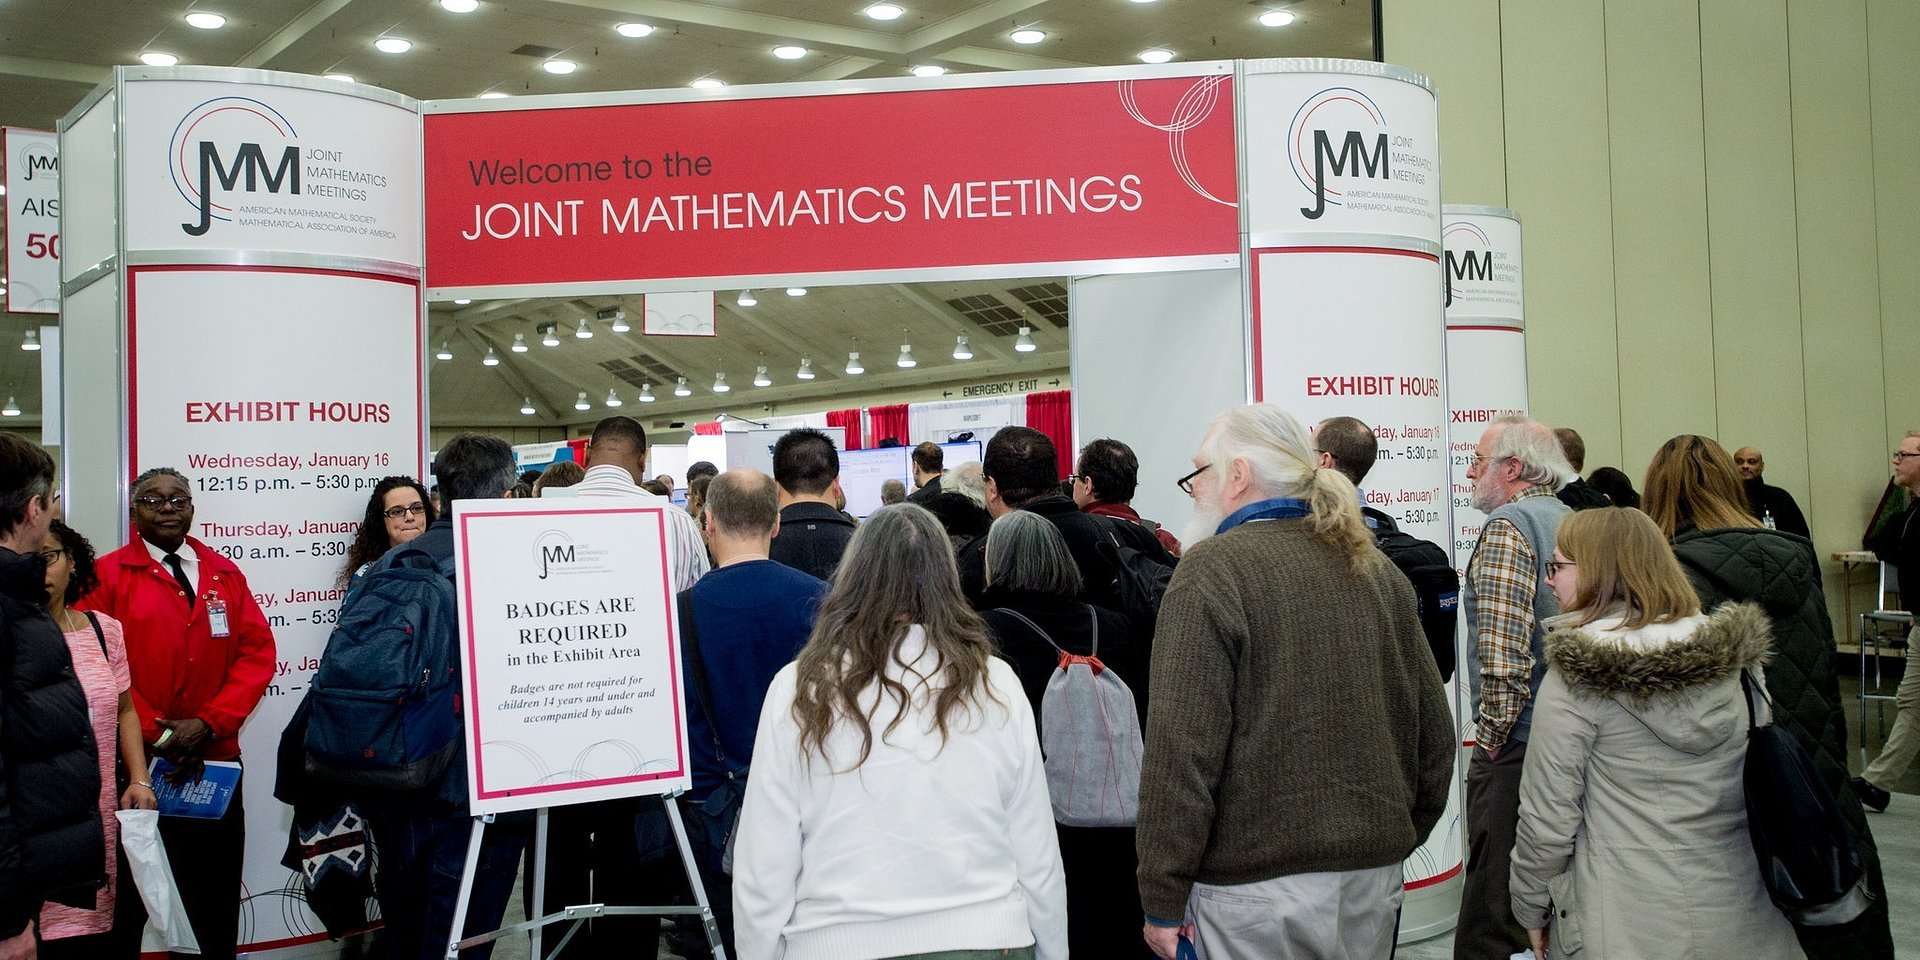 MAA and the Joint Mathematics Meetings